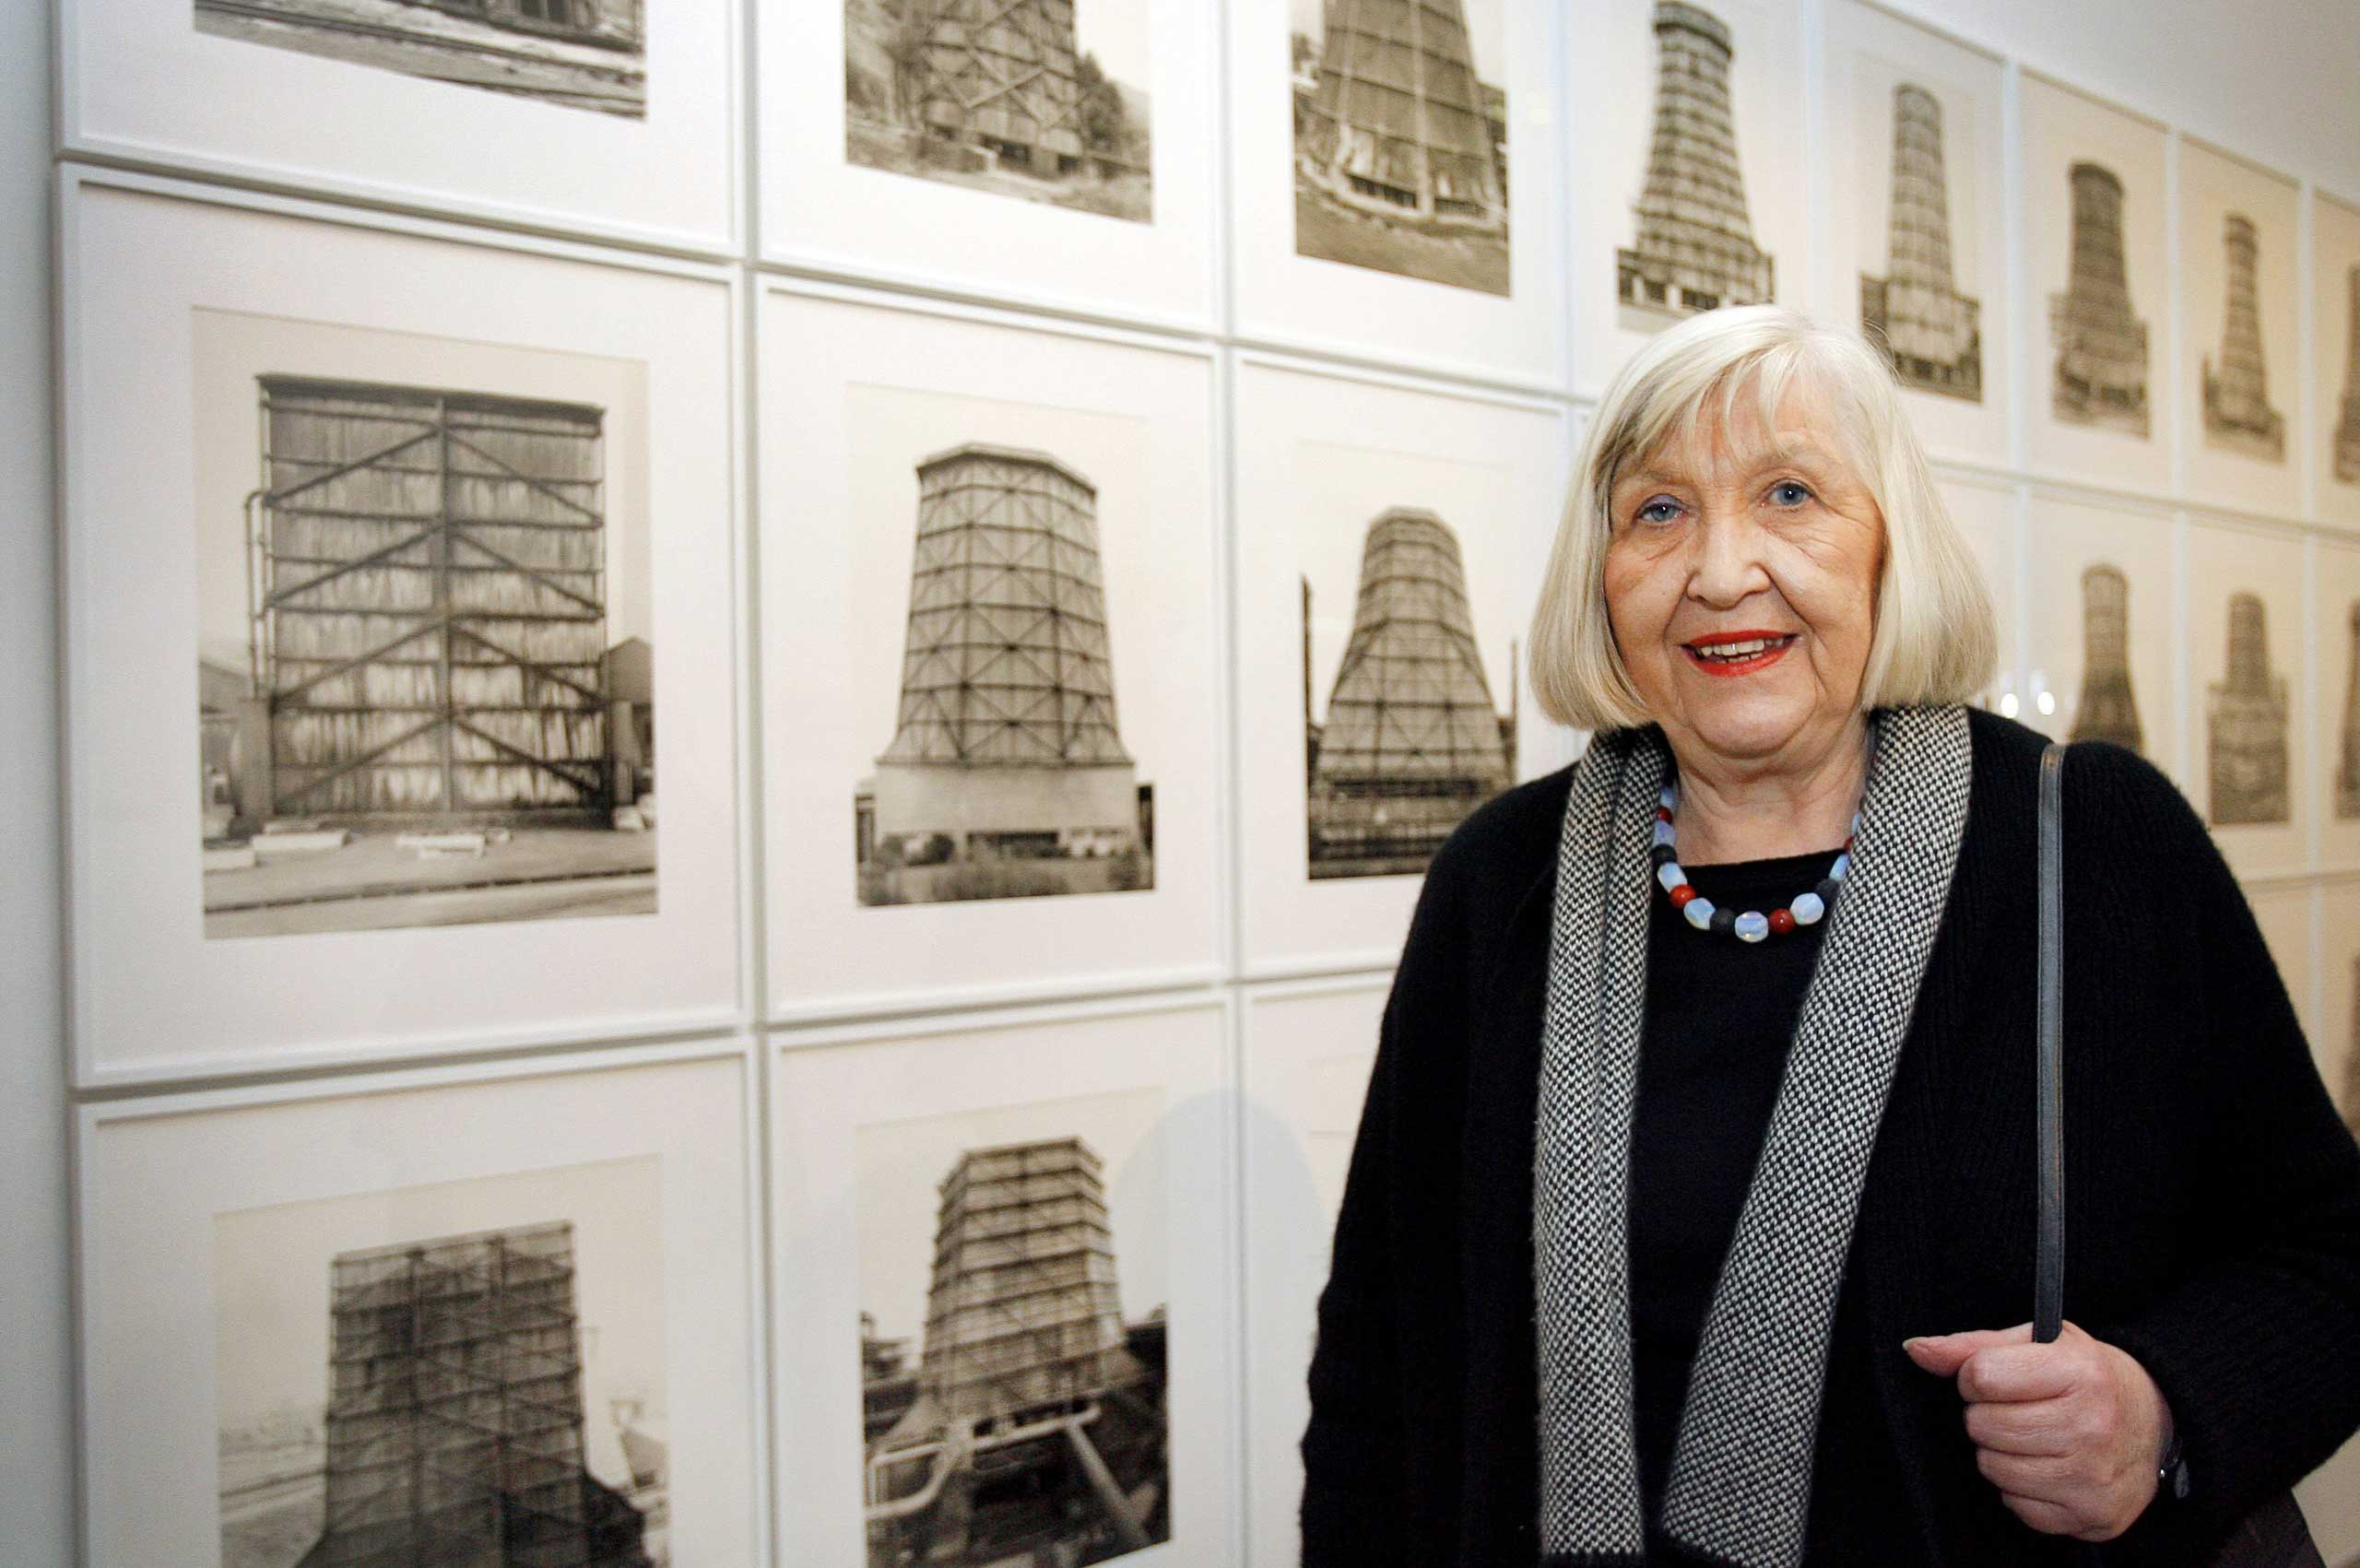 German photographer Hilla Becher posing next to her photo series  Cooling Towers  at the Musee d'Art Moderne de la Ville in Paris, France, on Oct. 2, 2008.